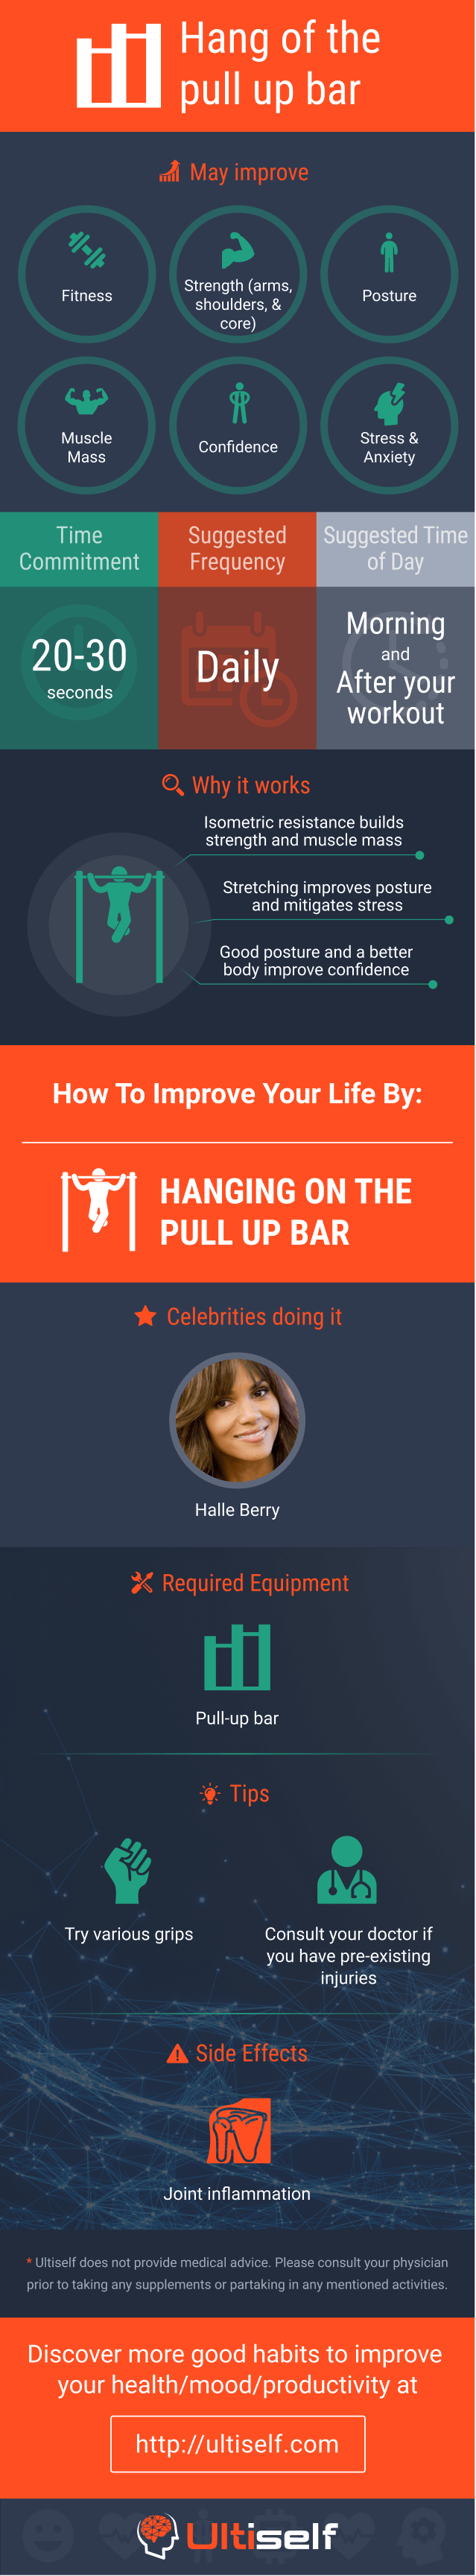 Hang of the pull up bar infographic